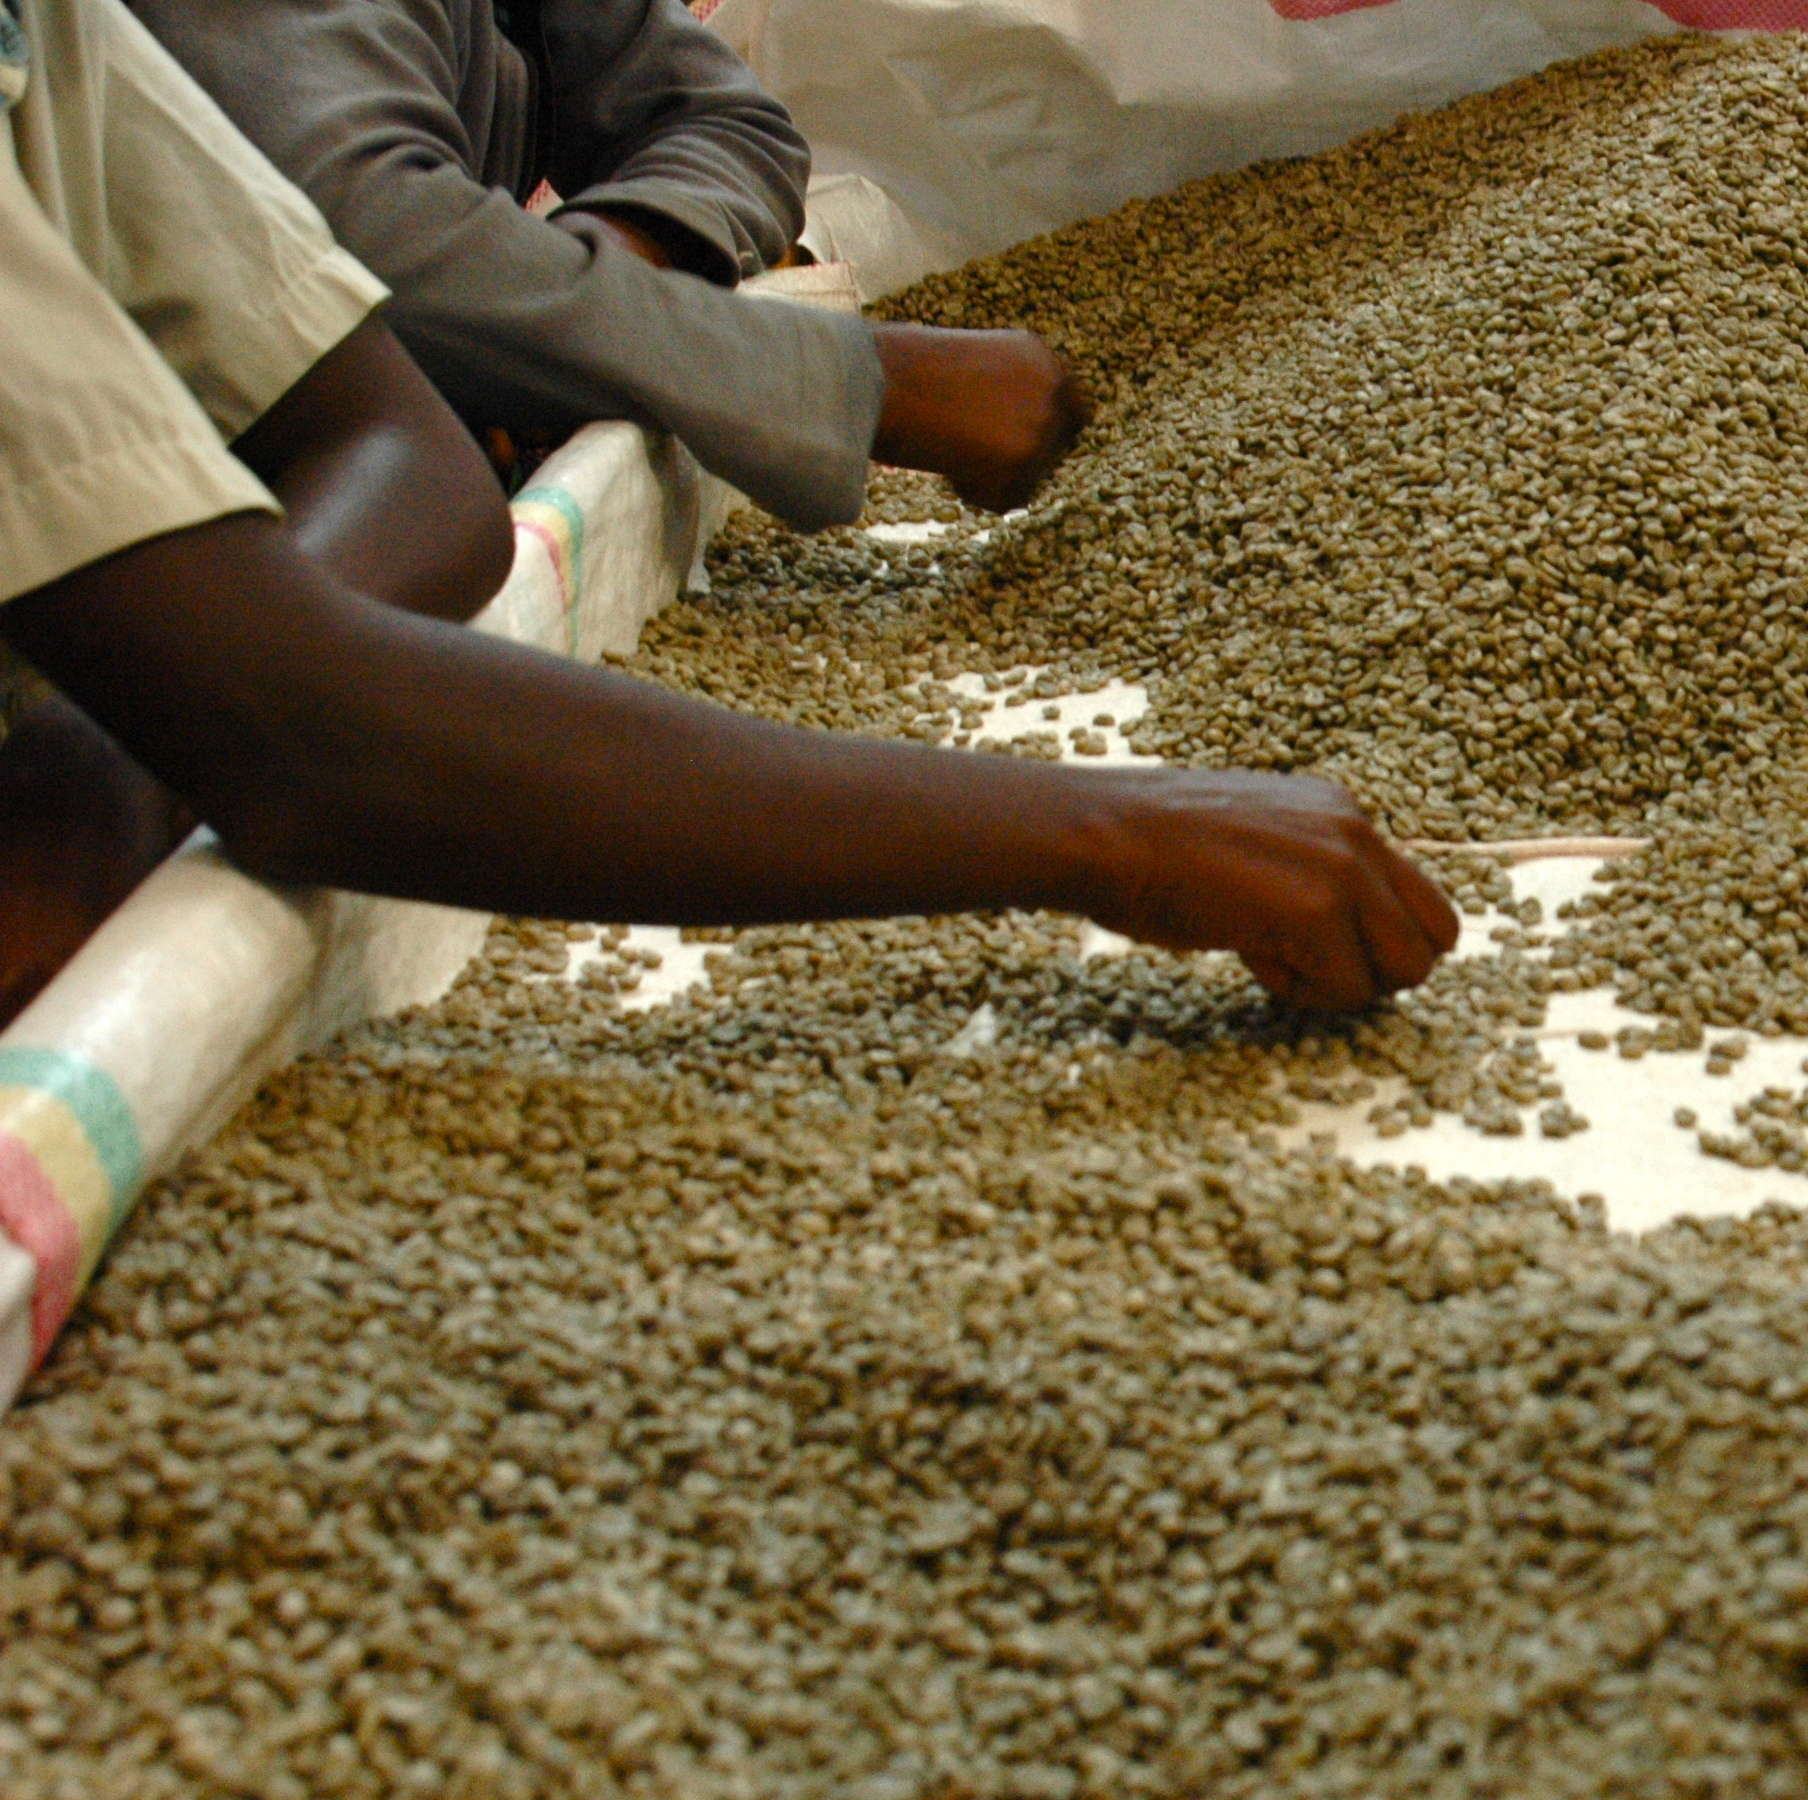 The first round of LINK focuses on Rwandan coffee